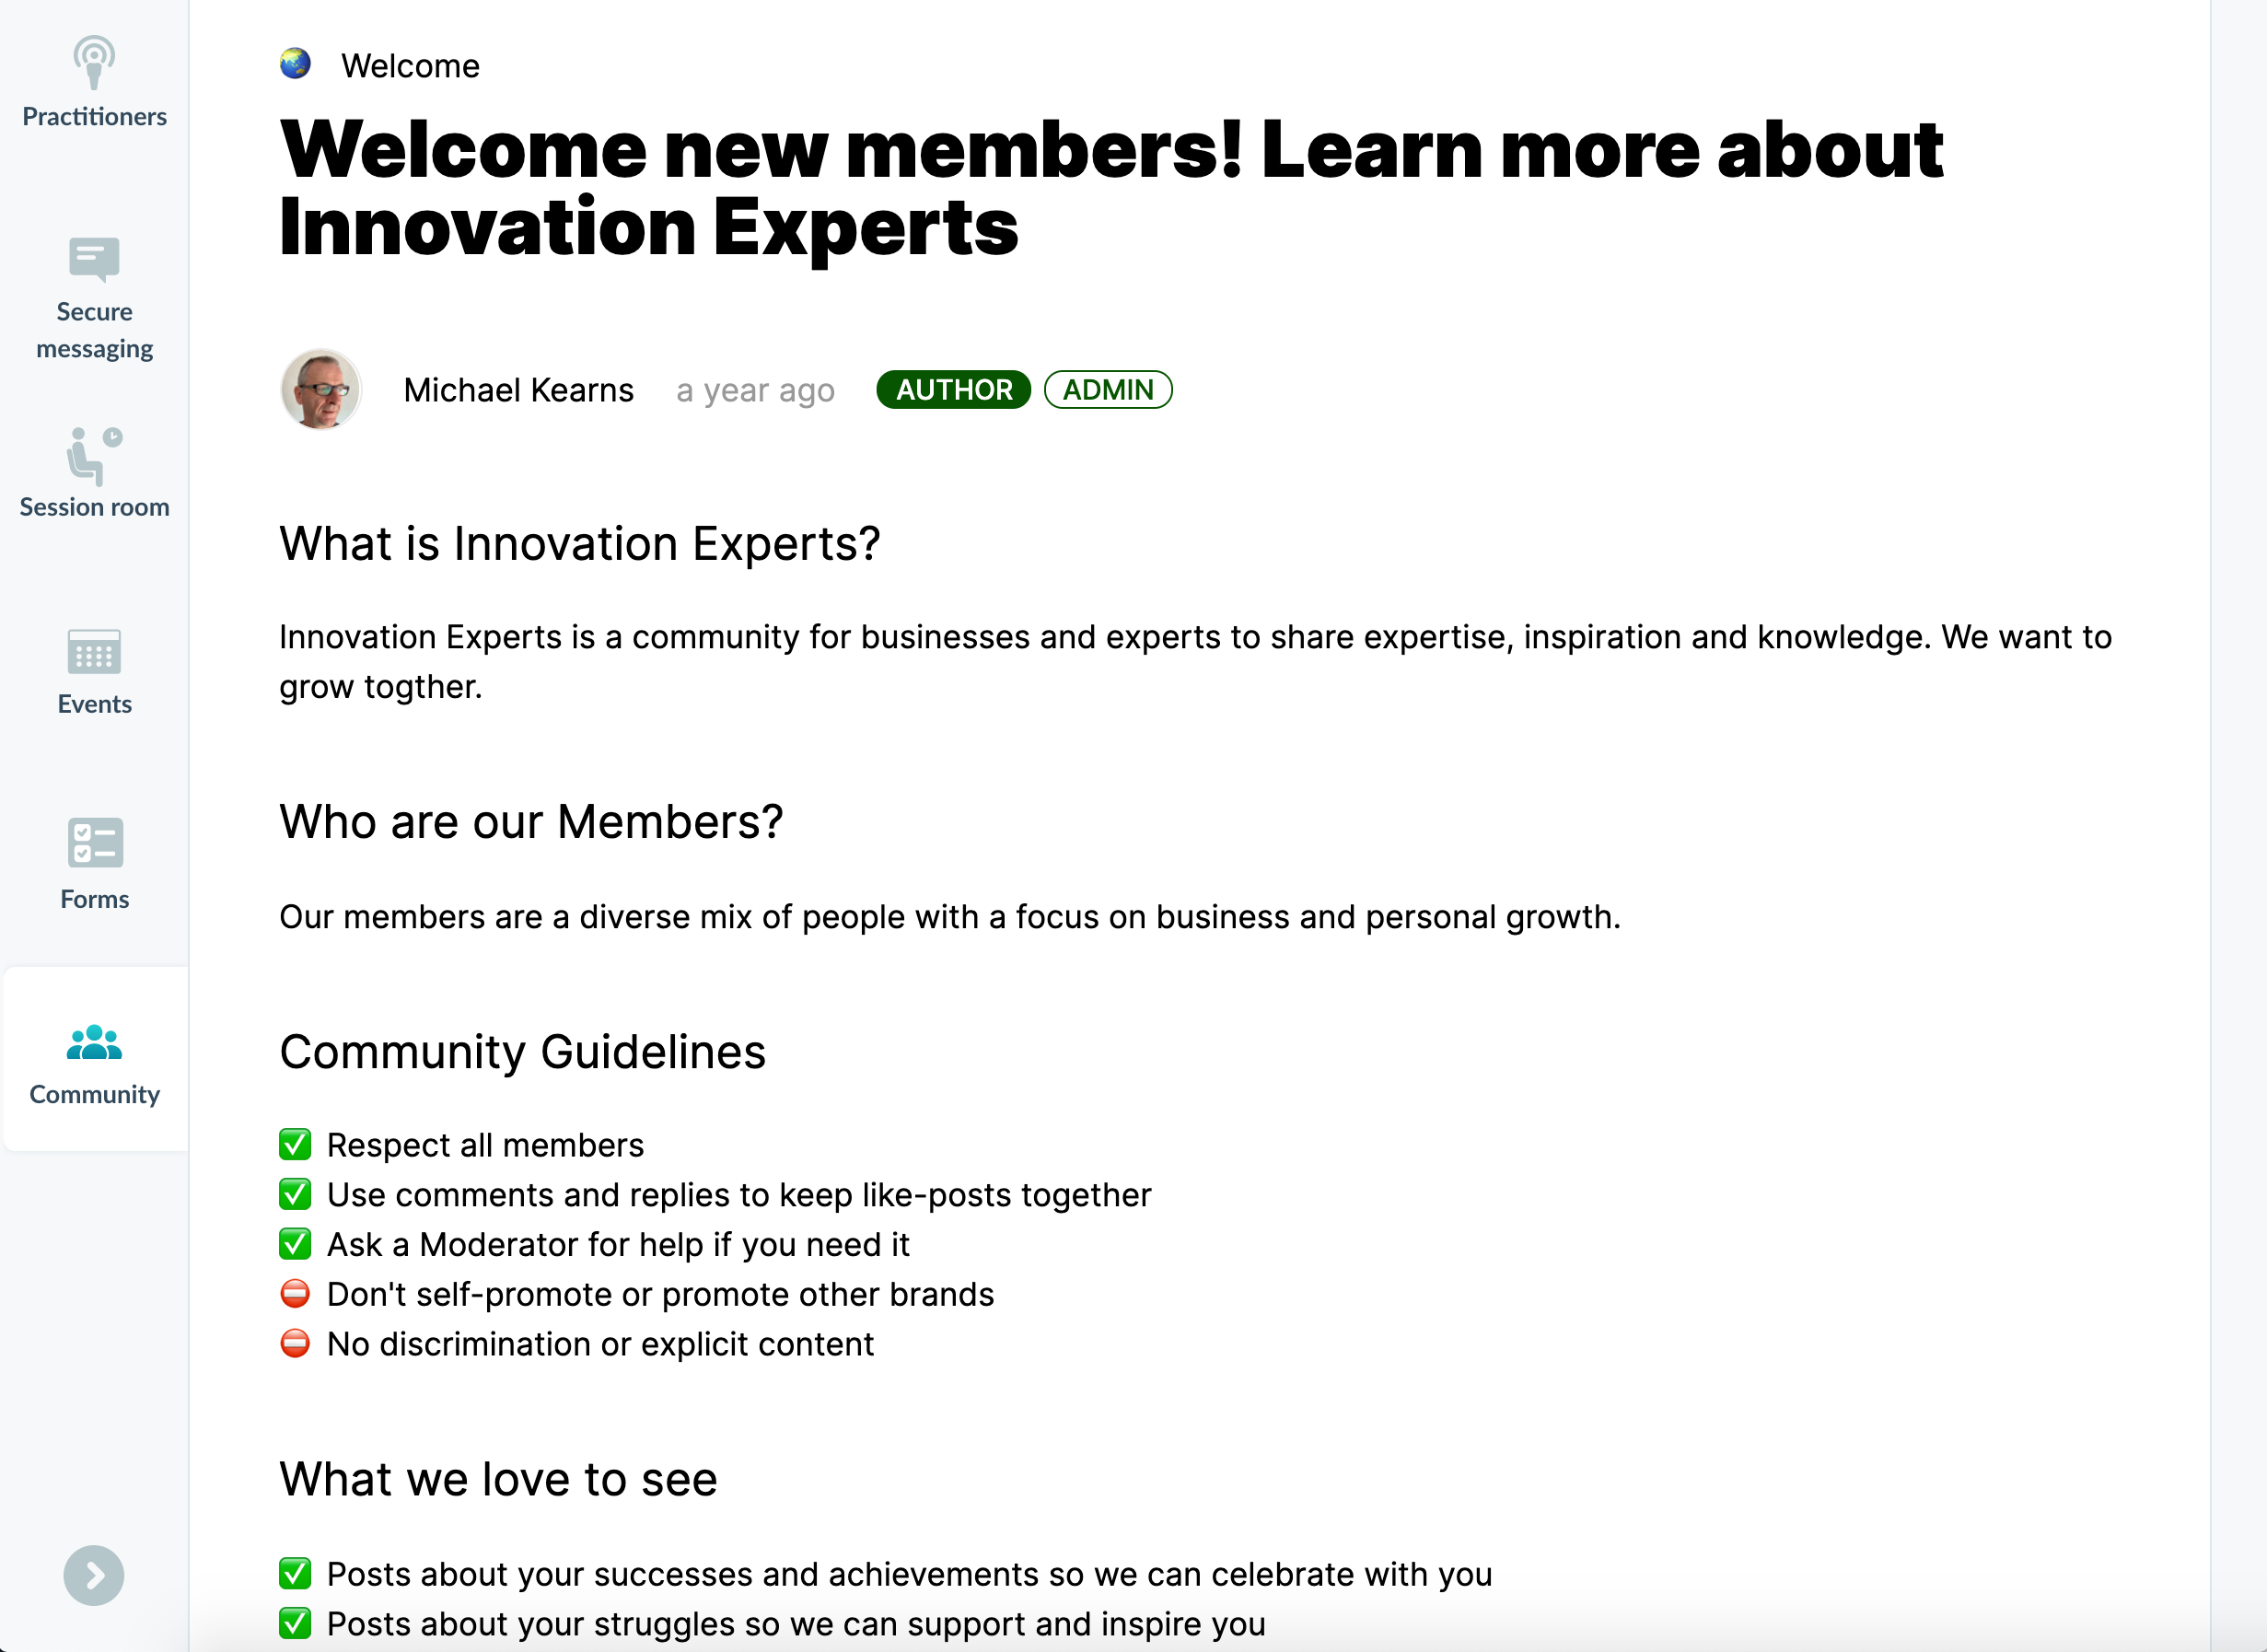 The Innovation Experts Community welcome page inside their Profi-powered expert marketplace